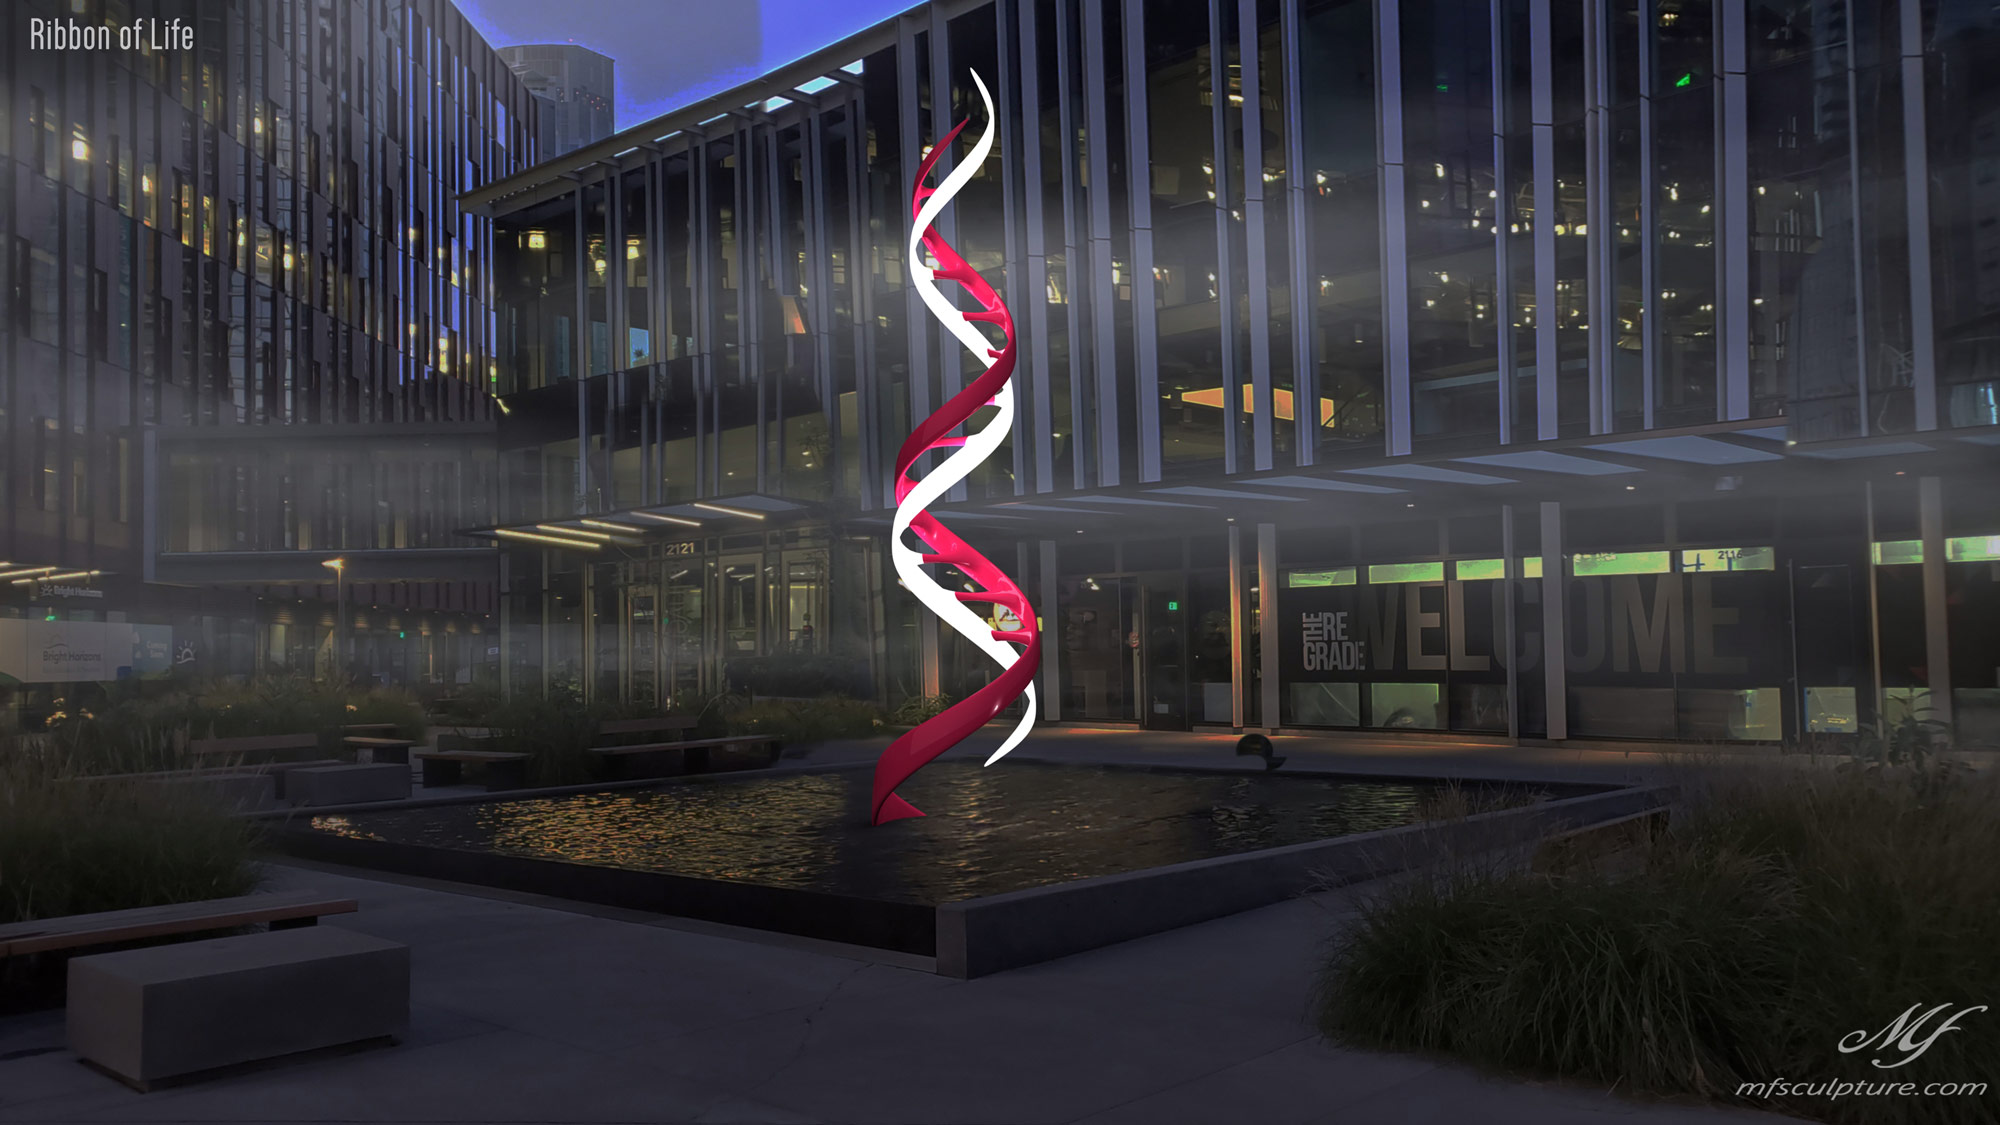 DNA Double Helix Sculpture Contemporary Biology 7